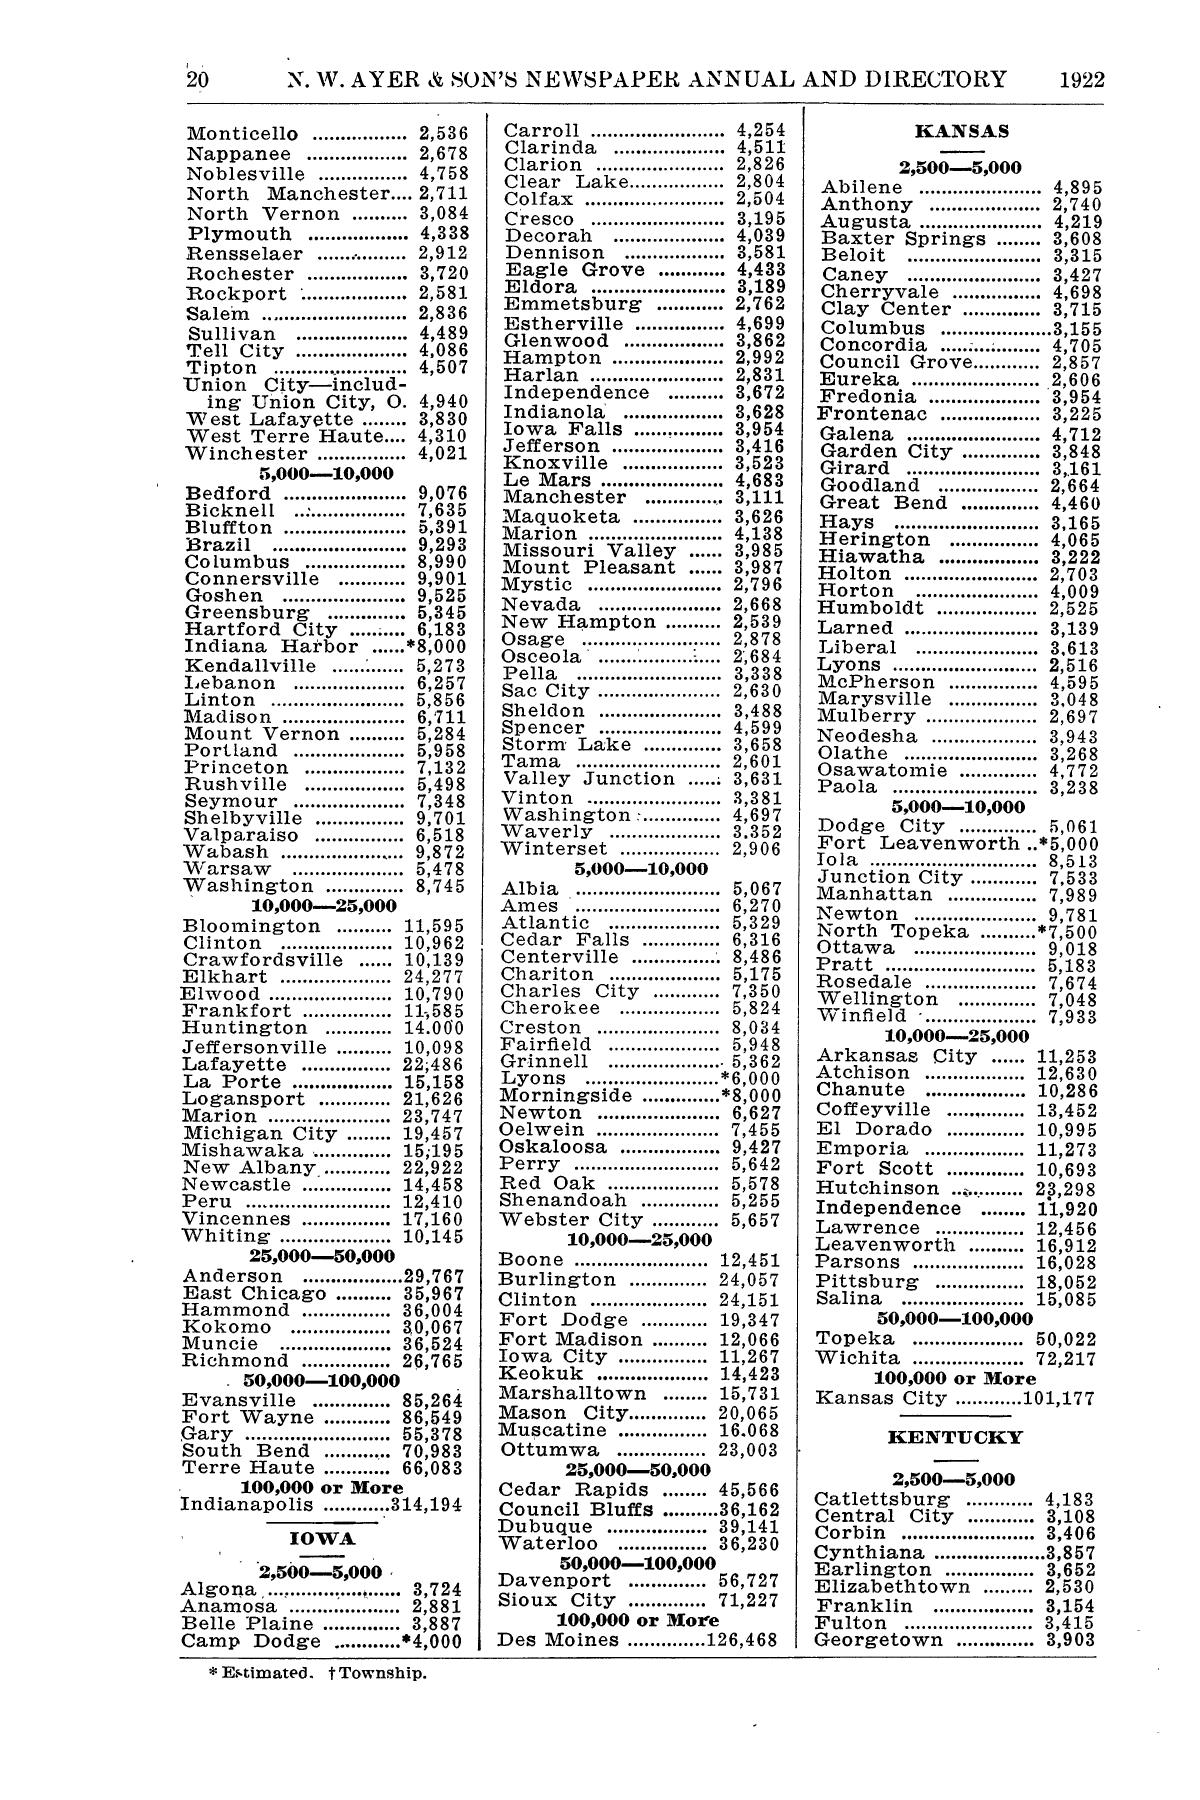 N. W. Ayer & Son's American Newspaper Annual and Directory: A Catalogue of American Newspapers, 1922, Volume 1                                                                                                      20